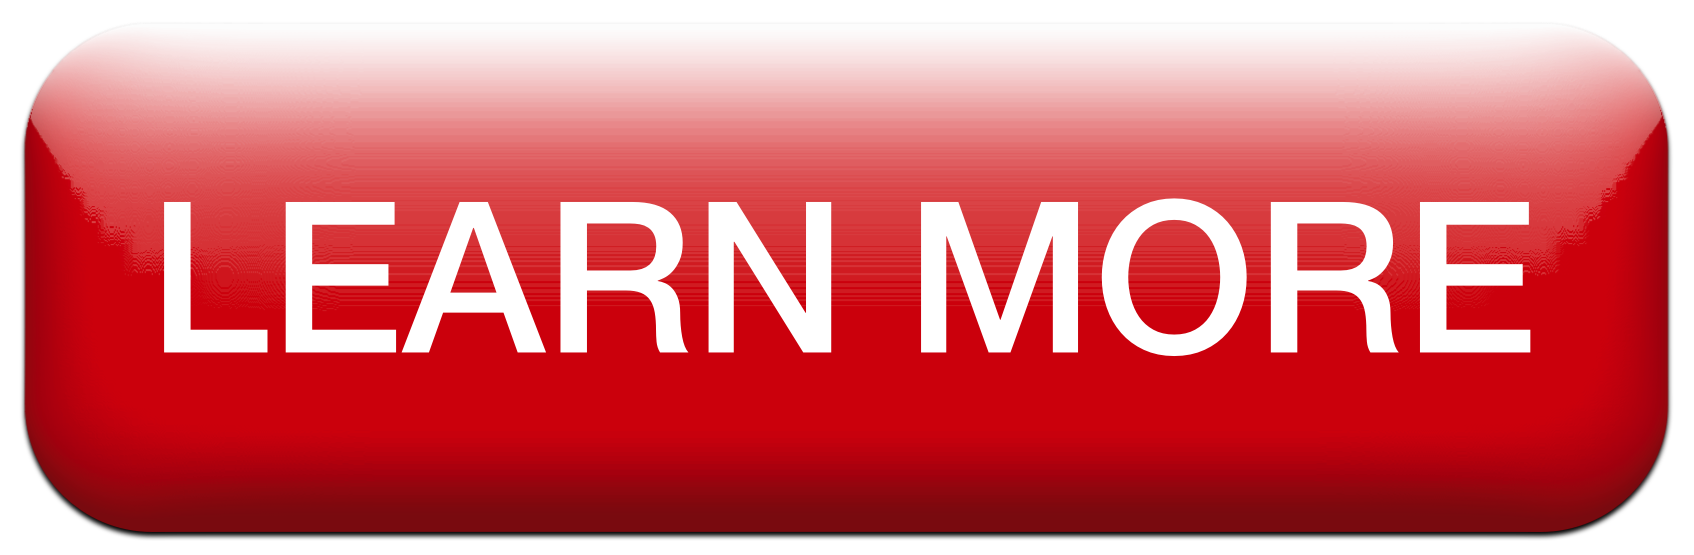 Learn More Button PNG - 25423